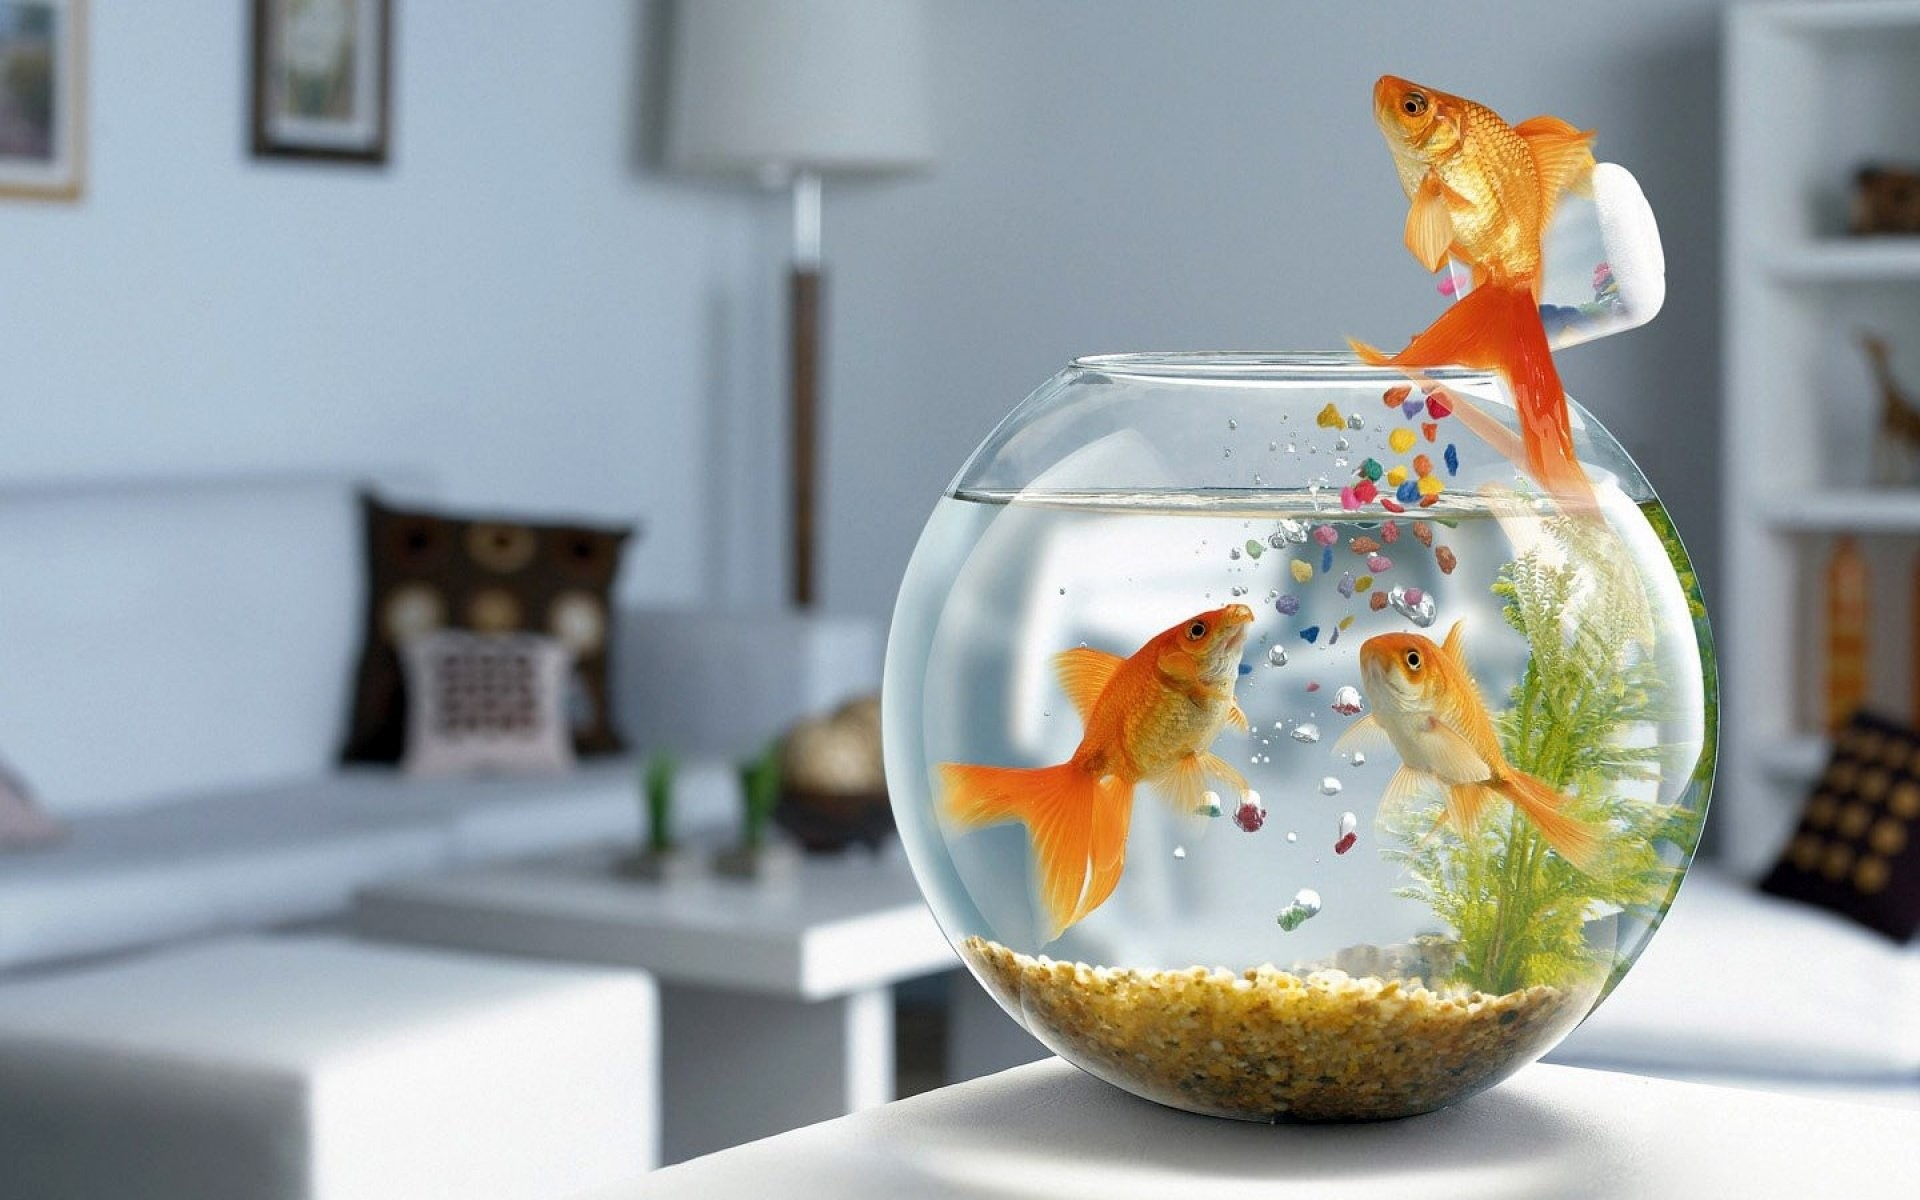 Res: 1920x1200, HD Wallpaper | Background Image ID:356256.  Humor Goldfish